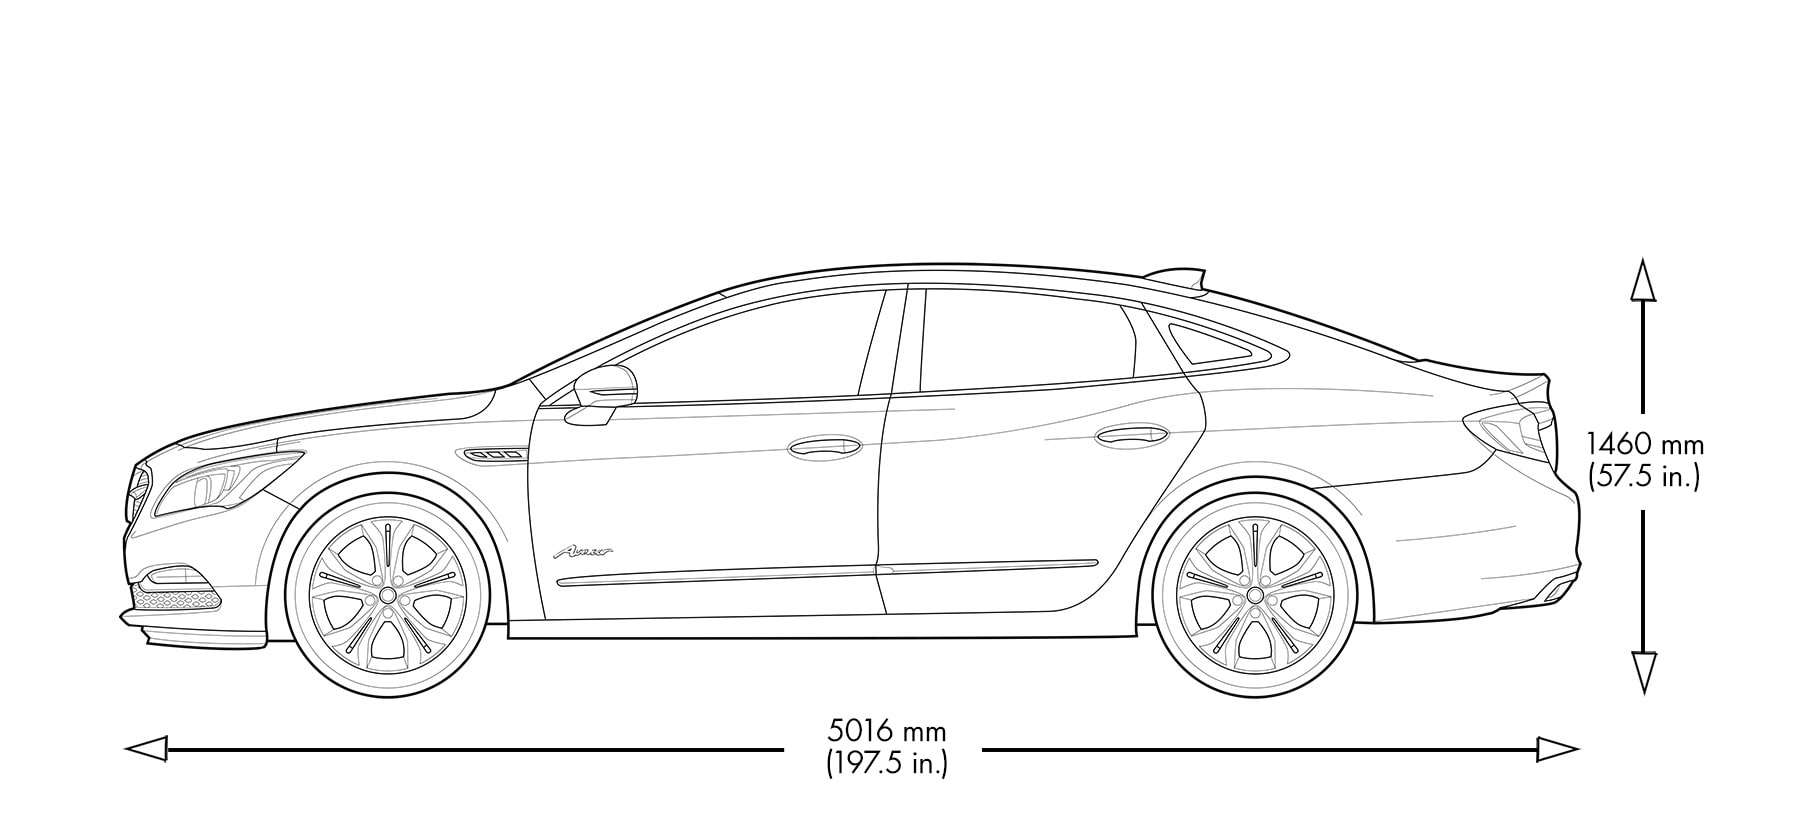 Height and width dimensions of the 2019 Buick LaCrosse Avenir.